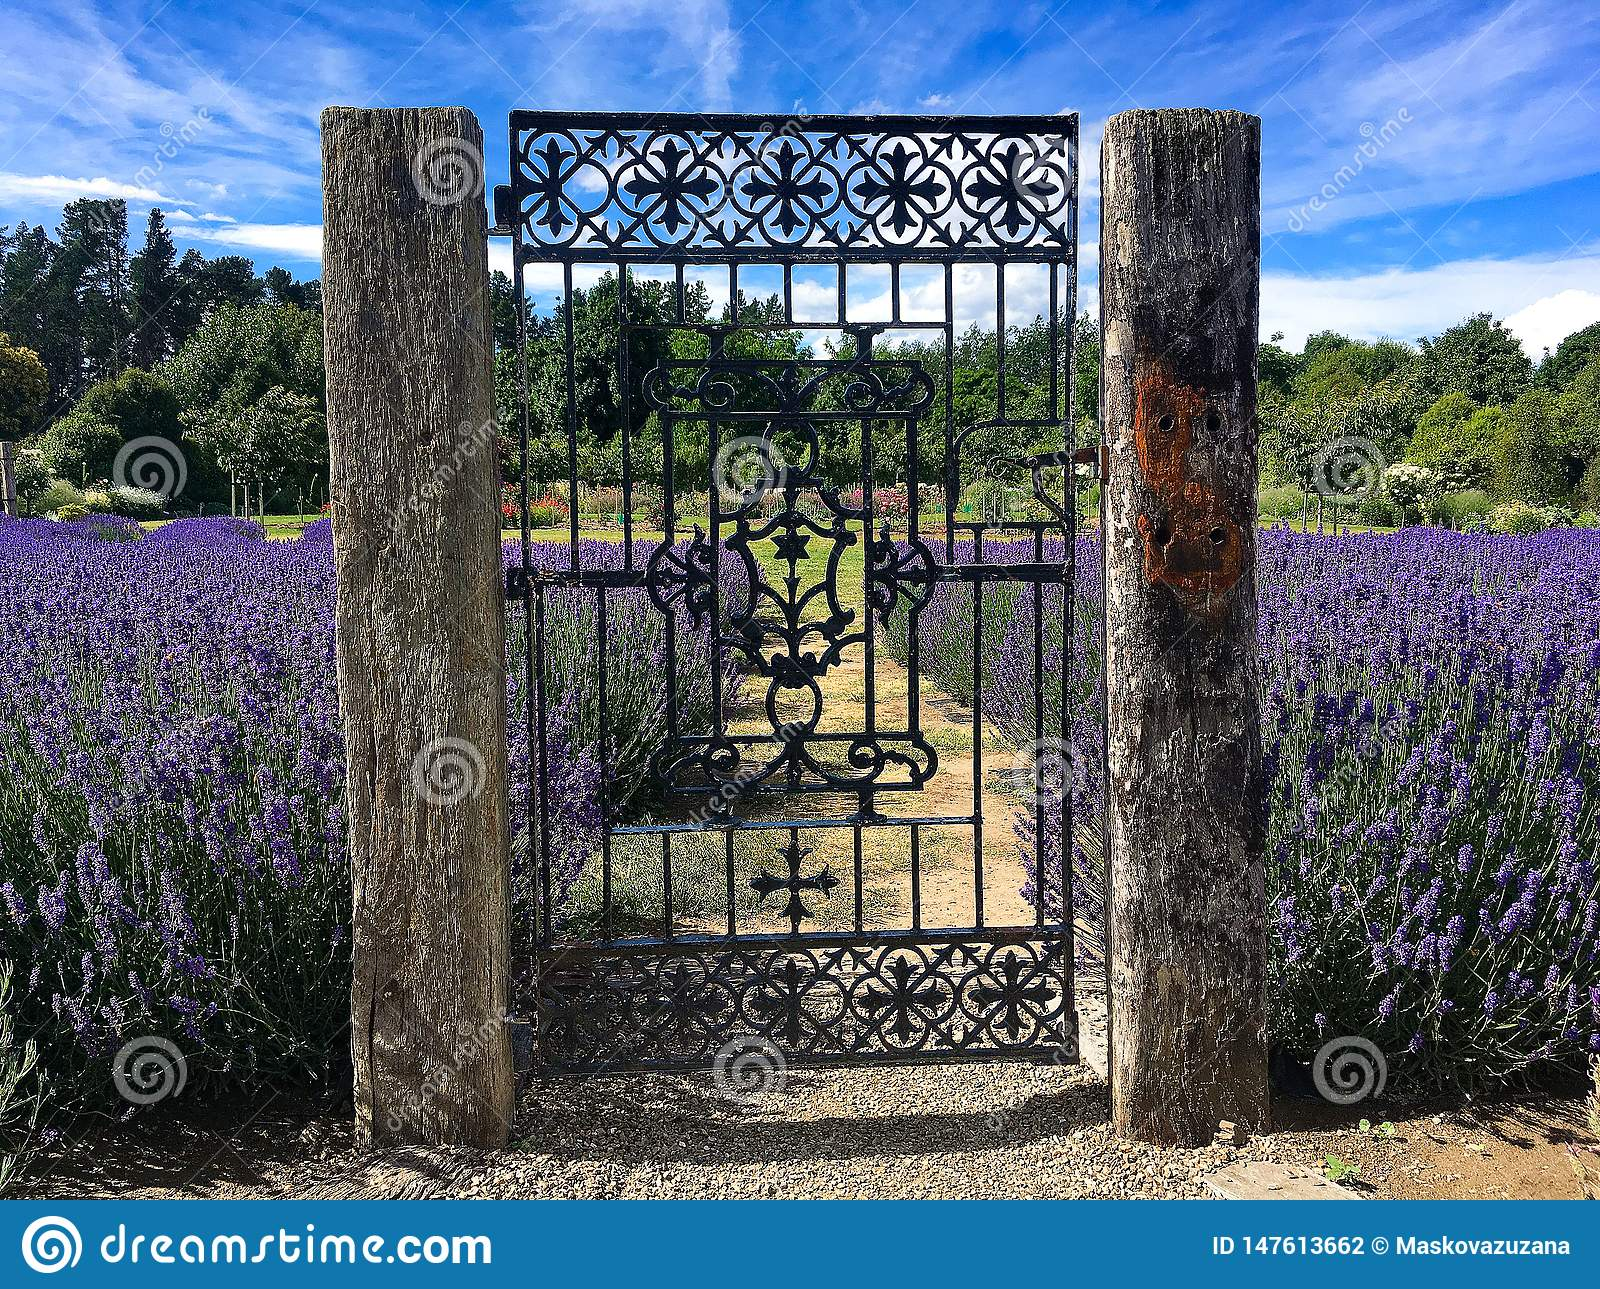 Entrance to blooming lavender garden